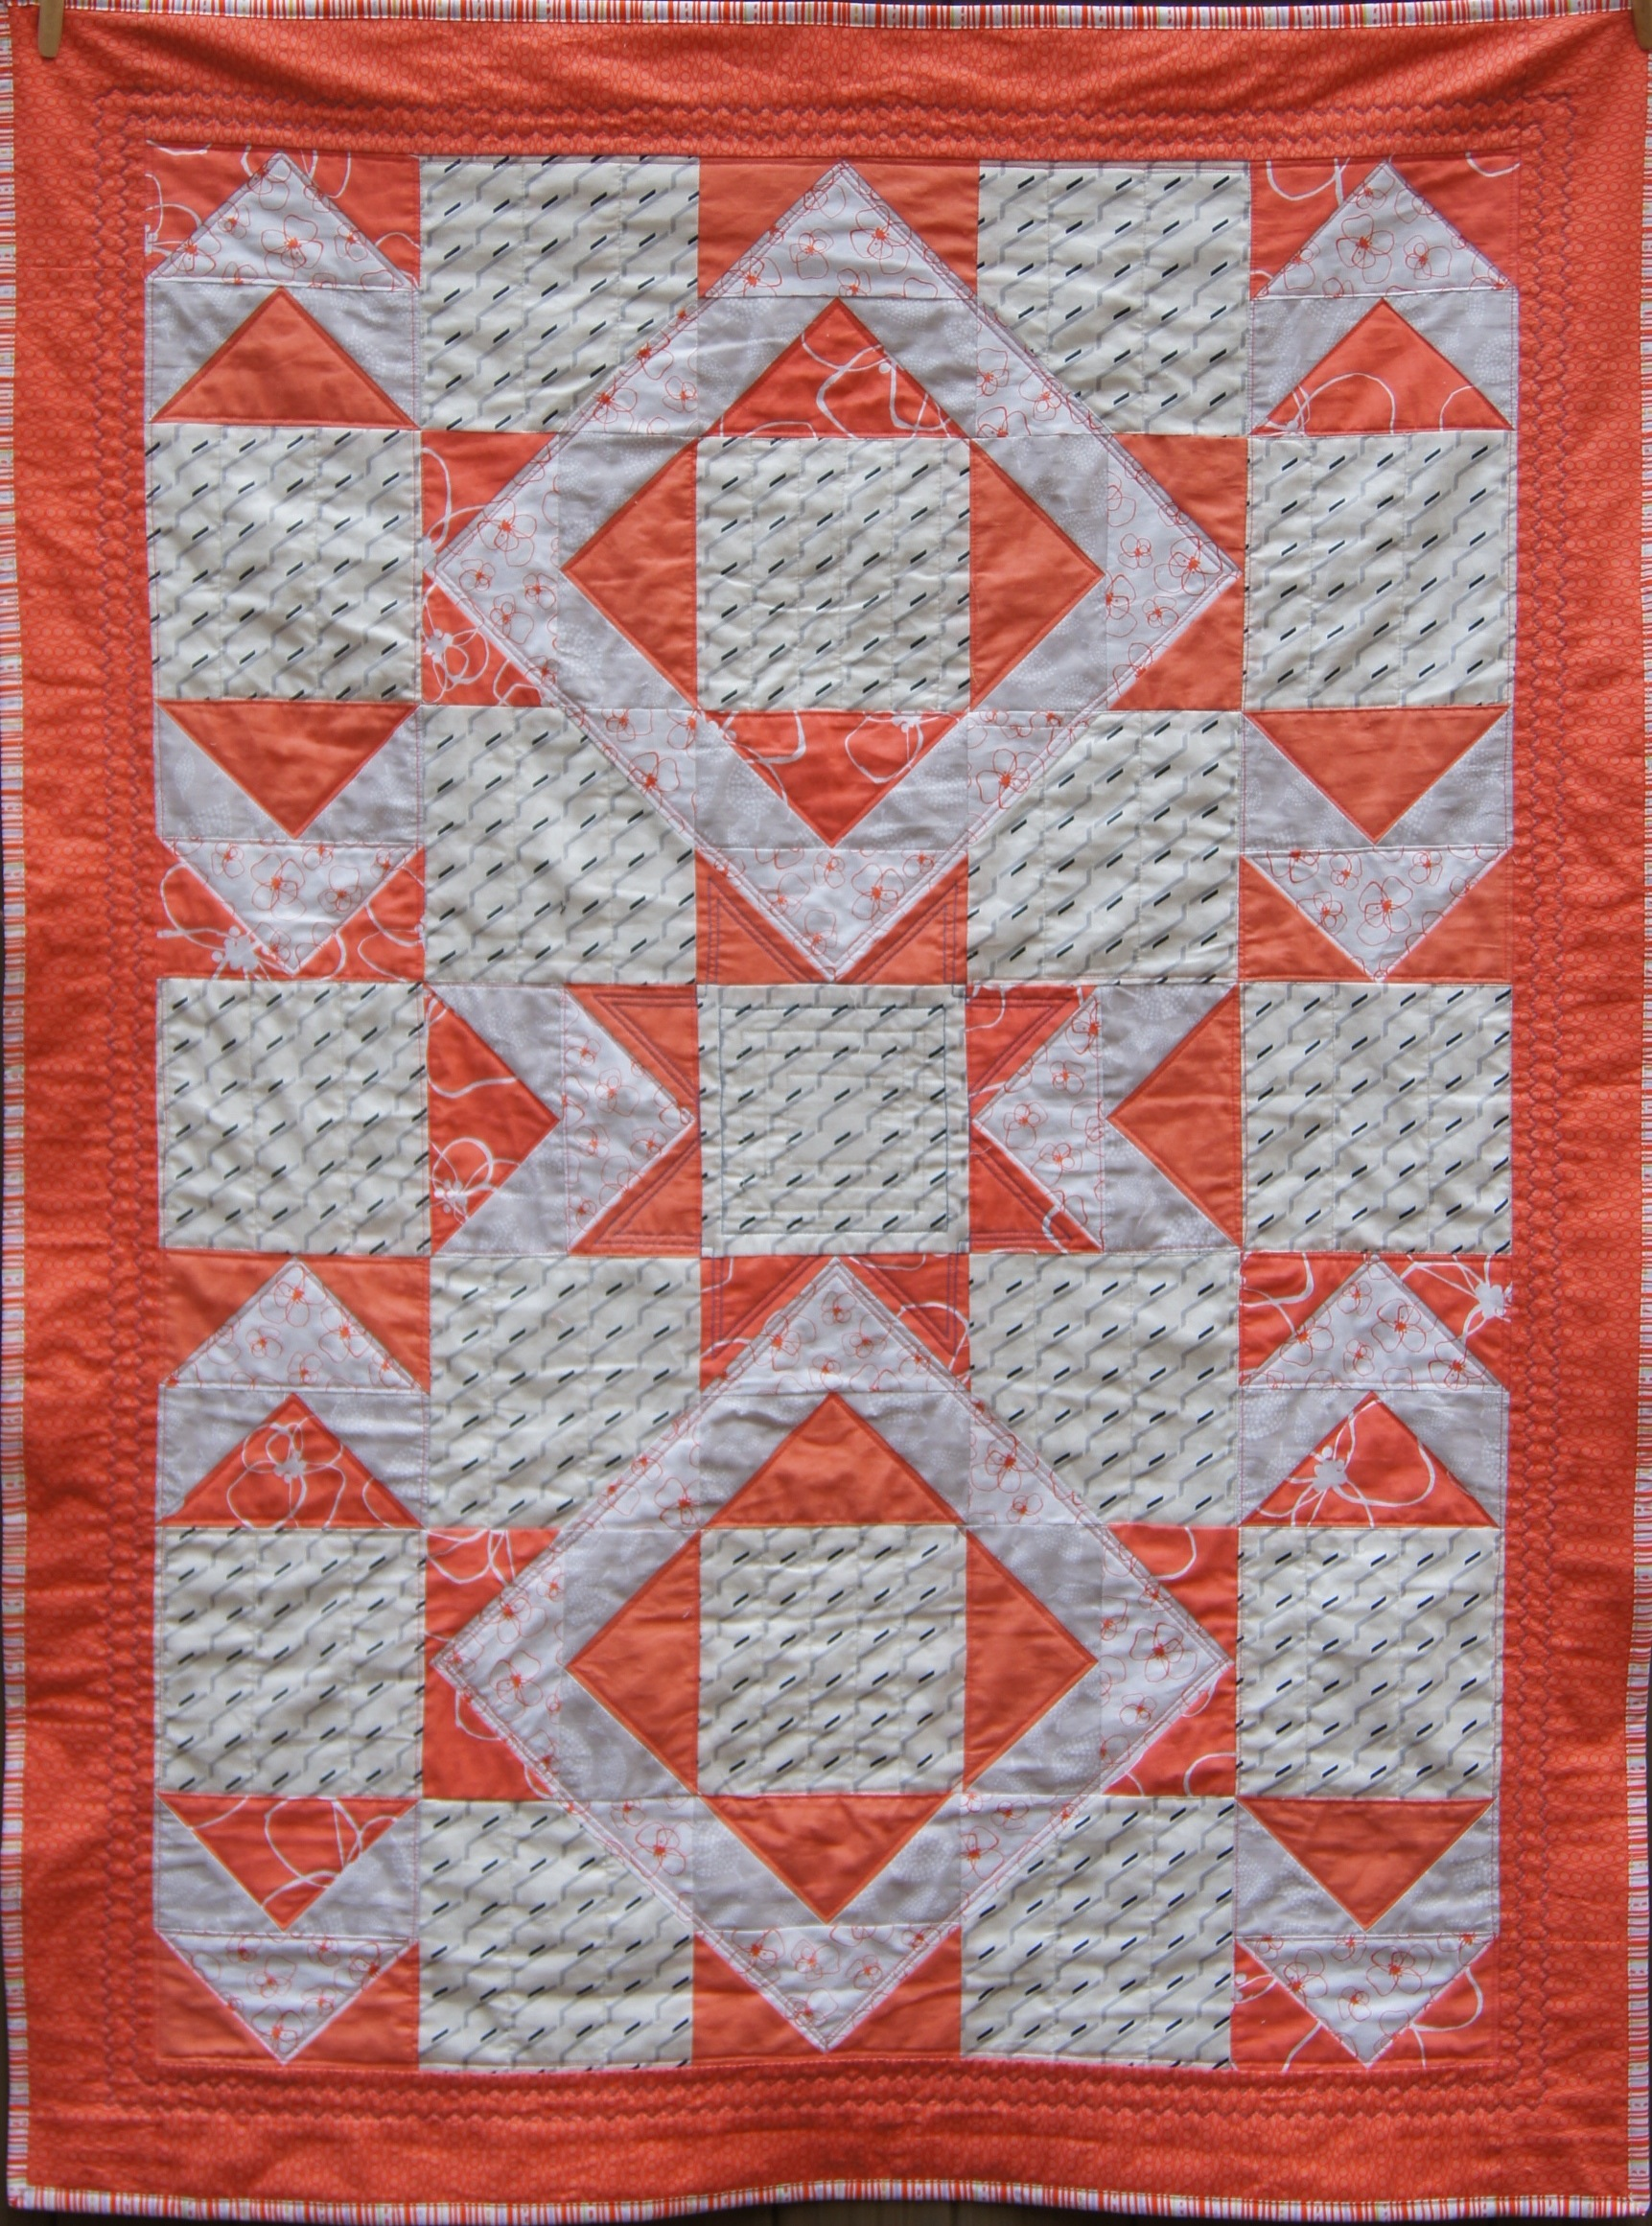 Quilt Modern Flying Geese Double Square, Single Star.jpg